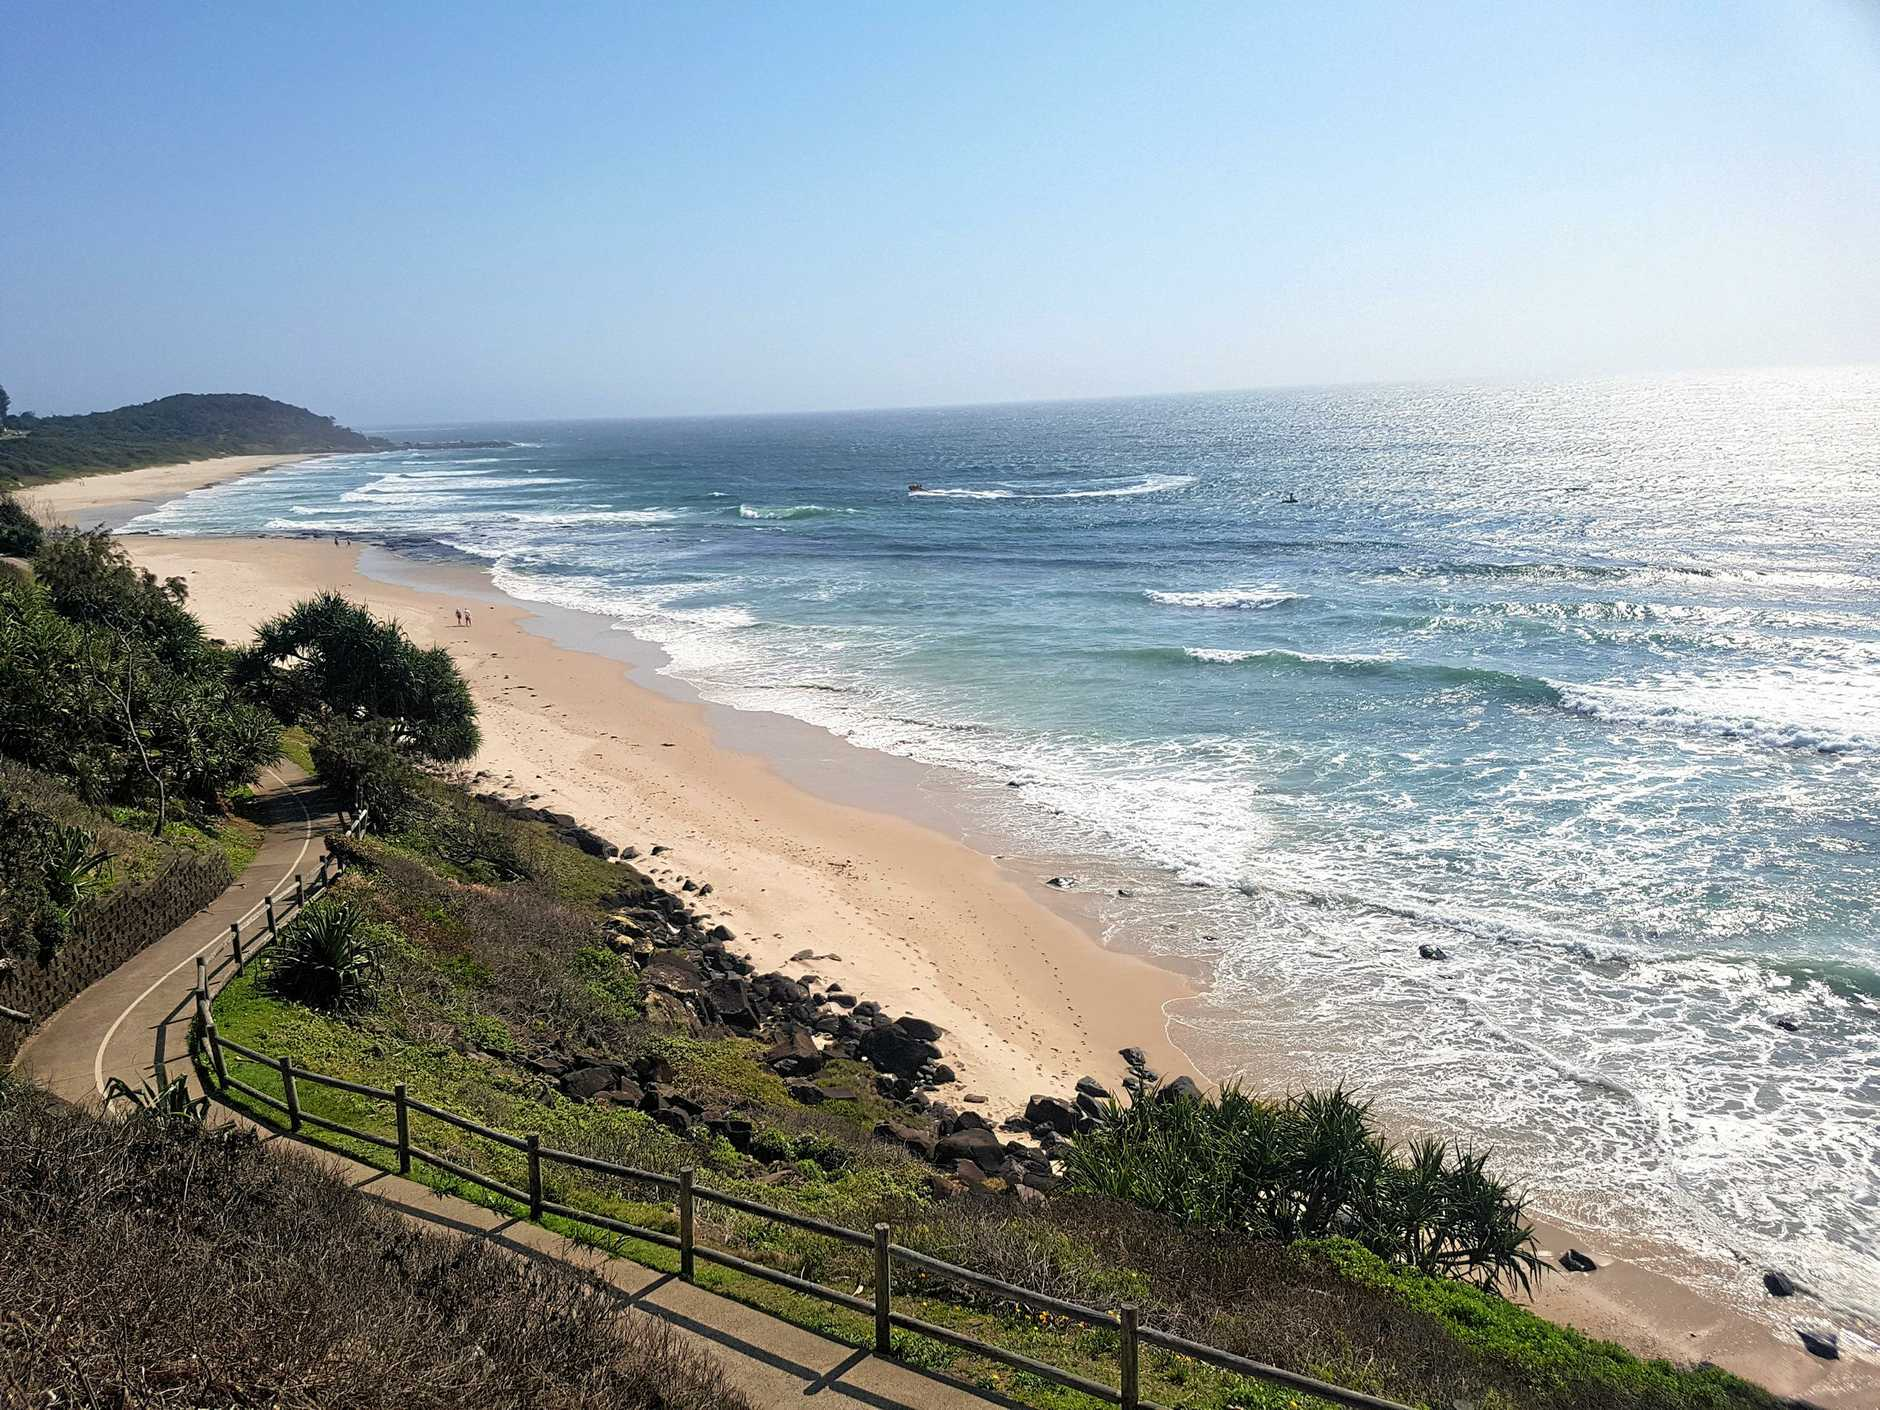 Work on the proposal for an ocean pool at Balllina's Shelly Beach is ongoing.